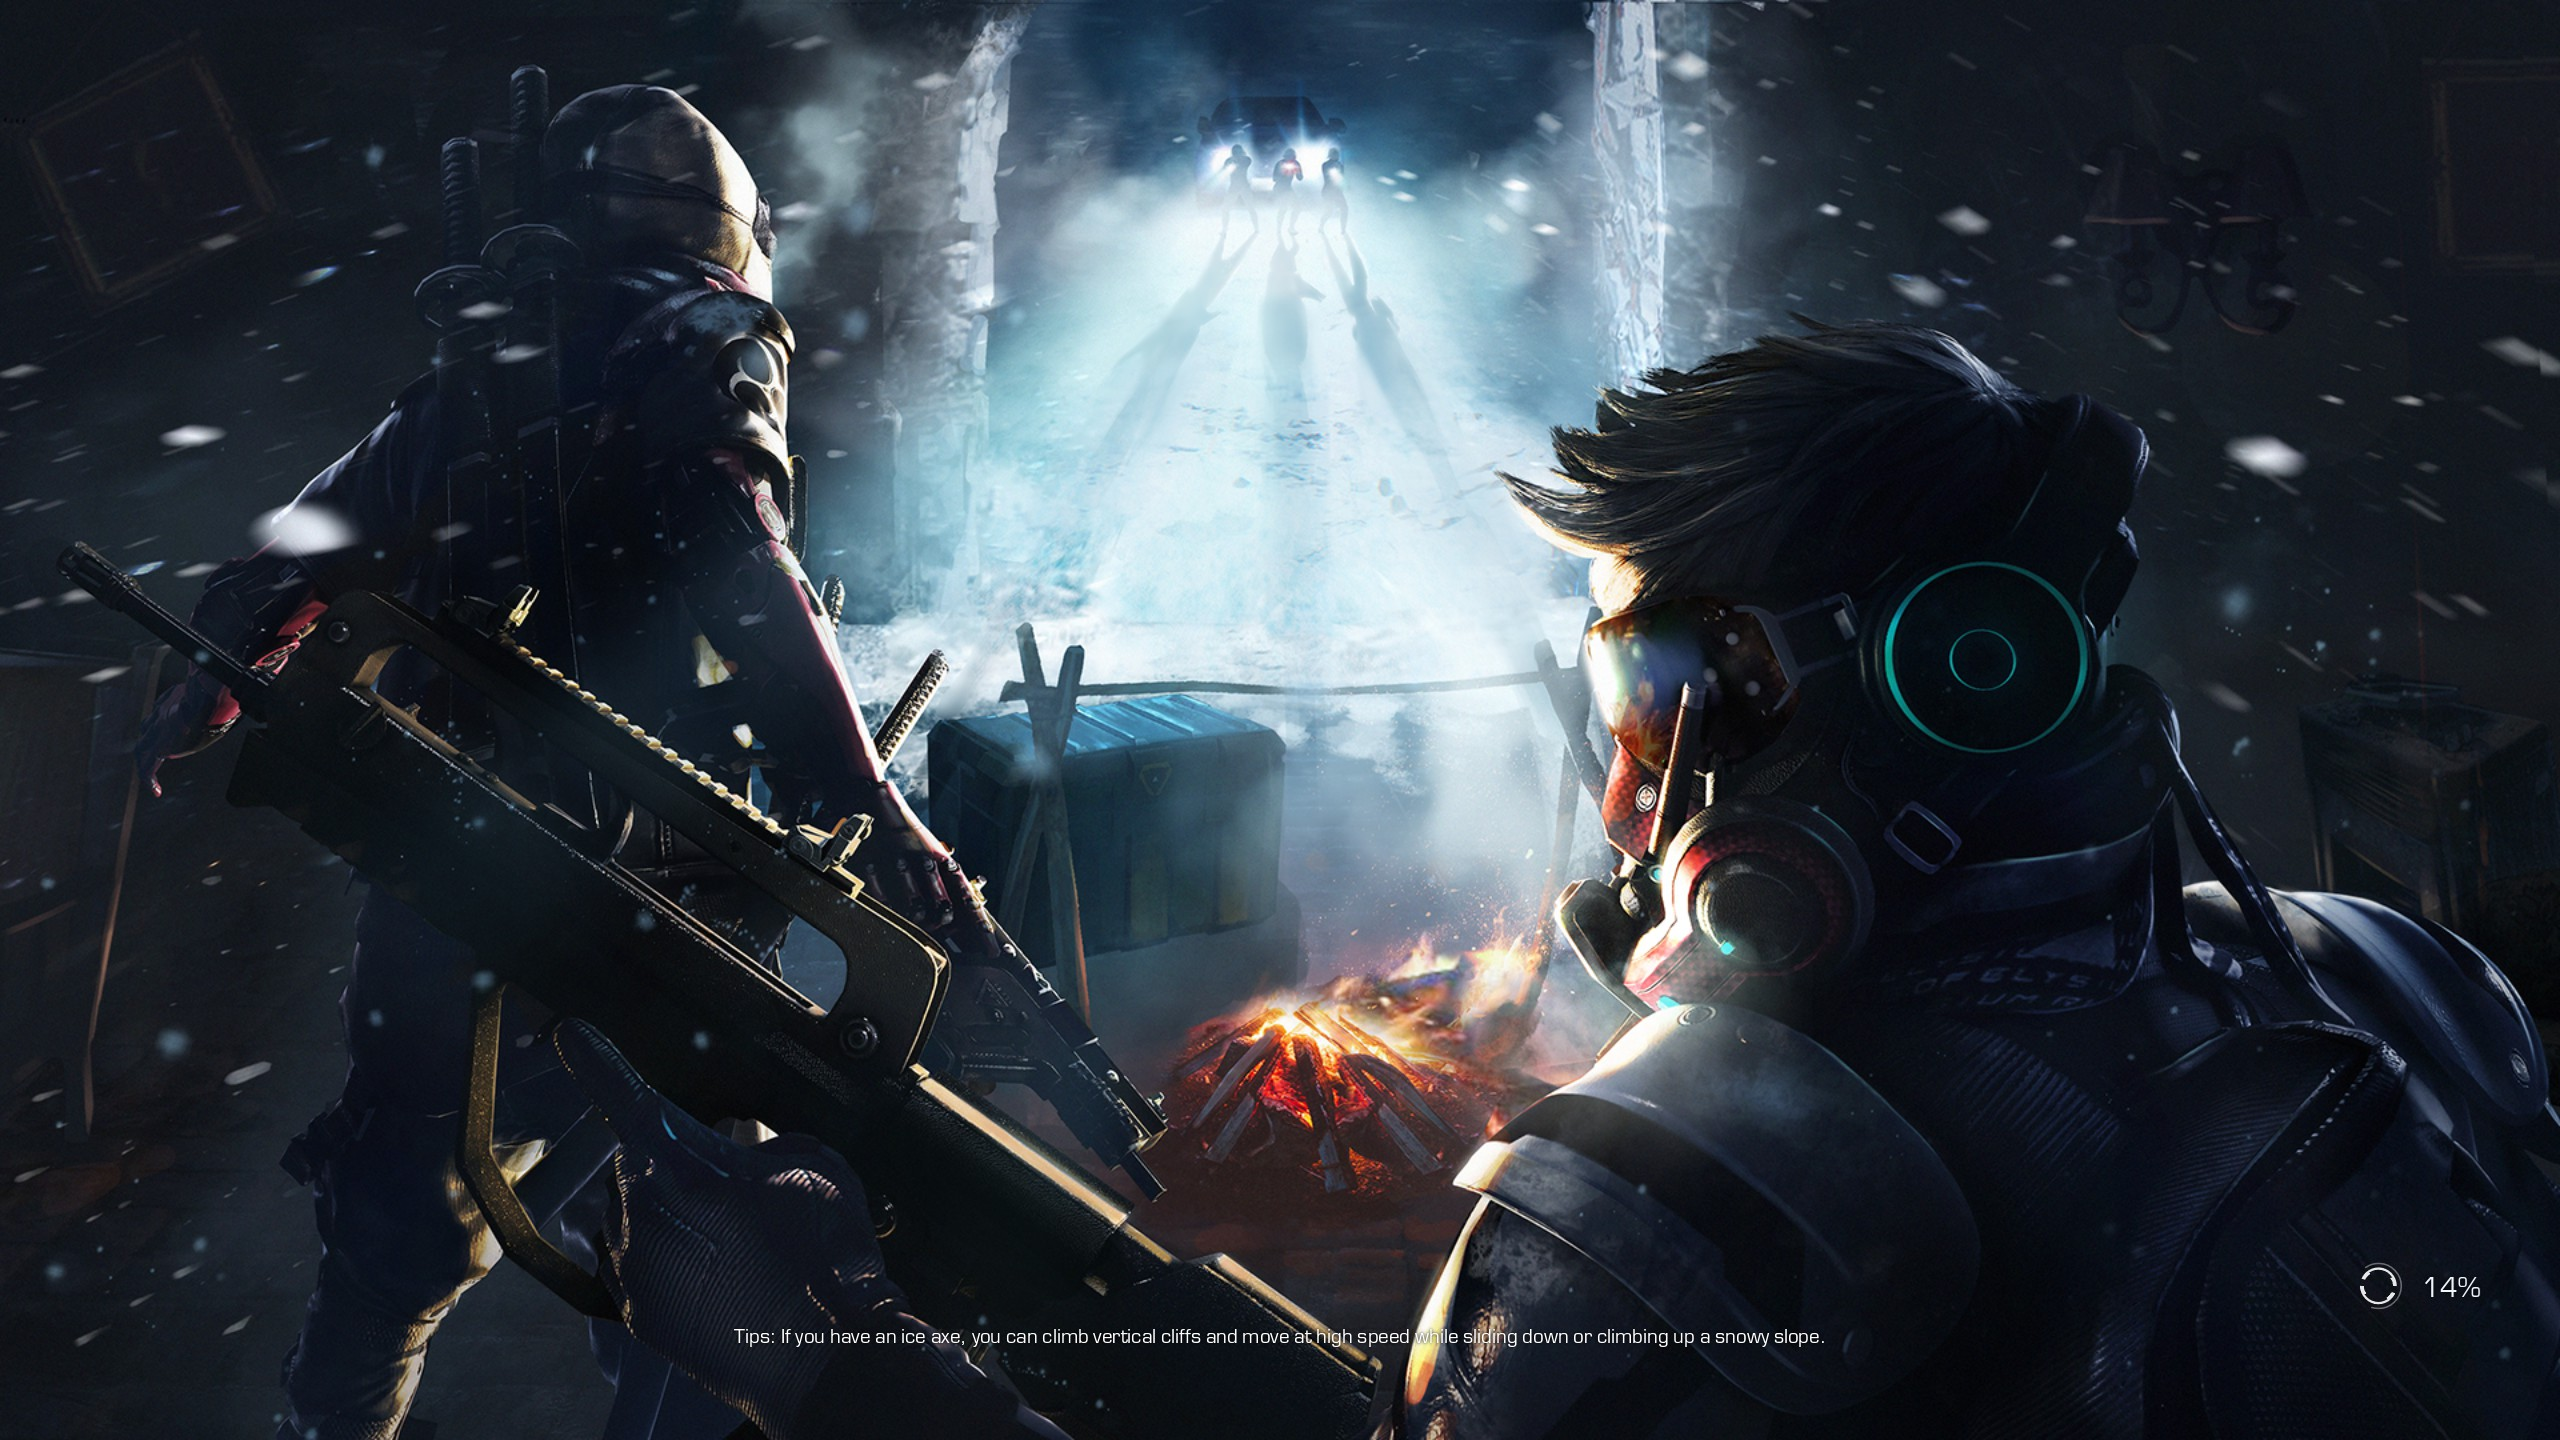 Ring Of Elysium Ring Of Elysium From Dusk Till Dawn 1582185 Hd Wallpaper Backgrounds Download